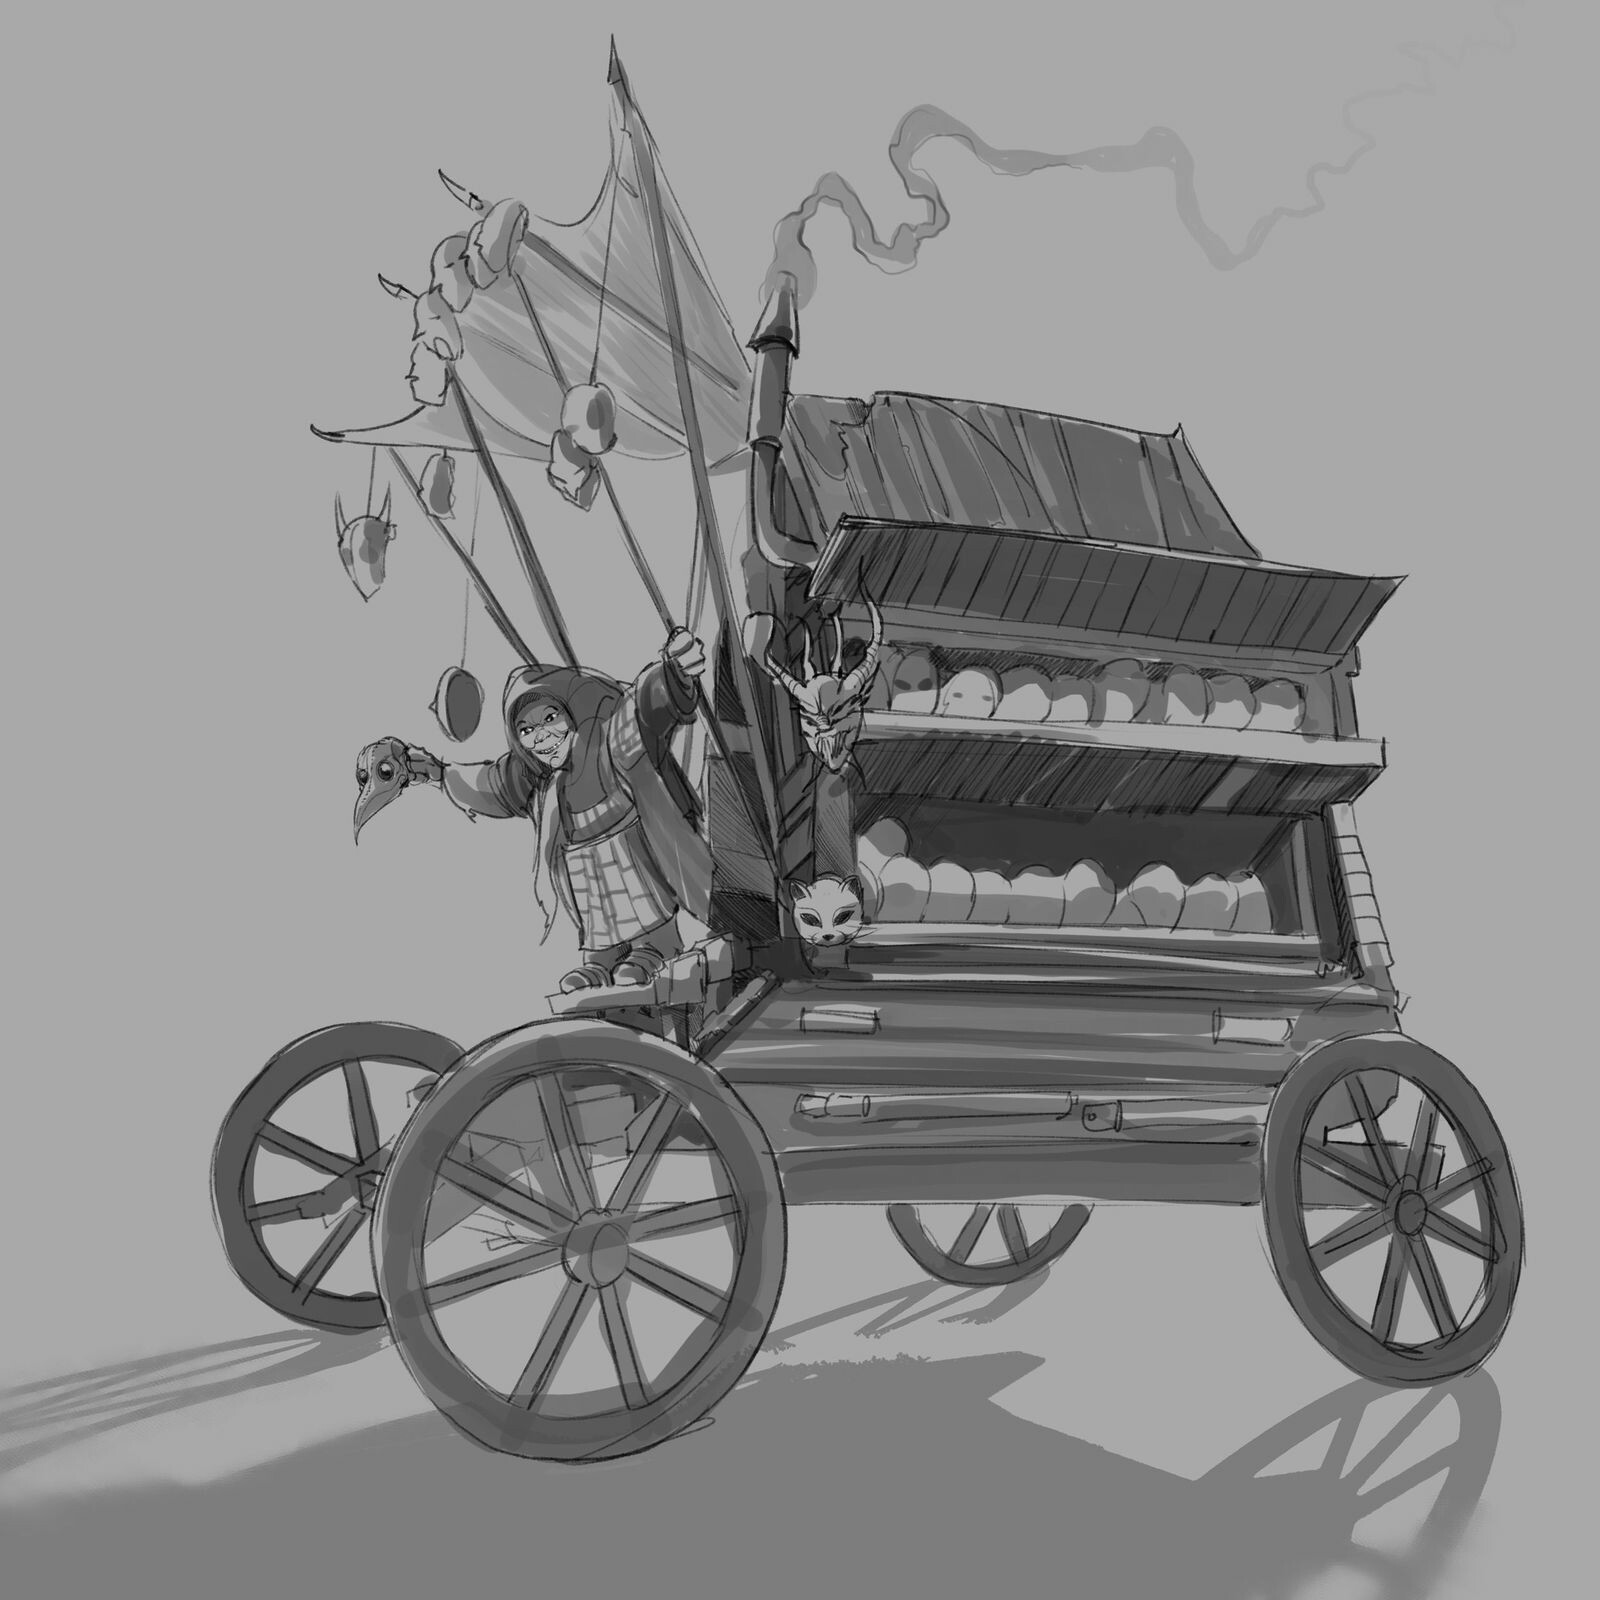 Mask Peddler sketch 1